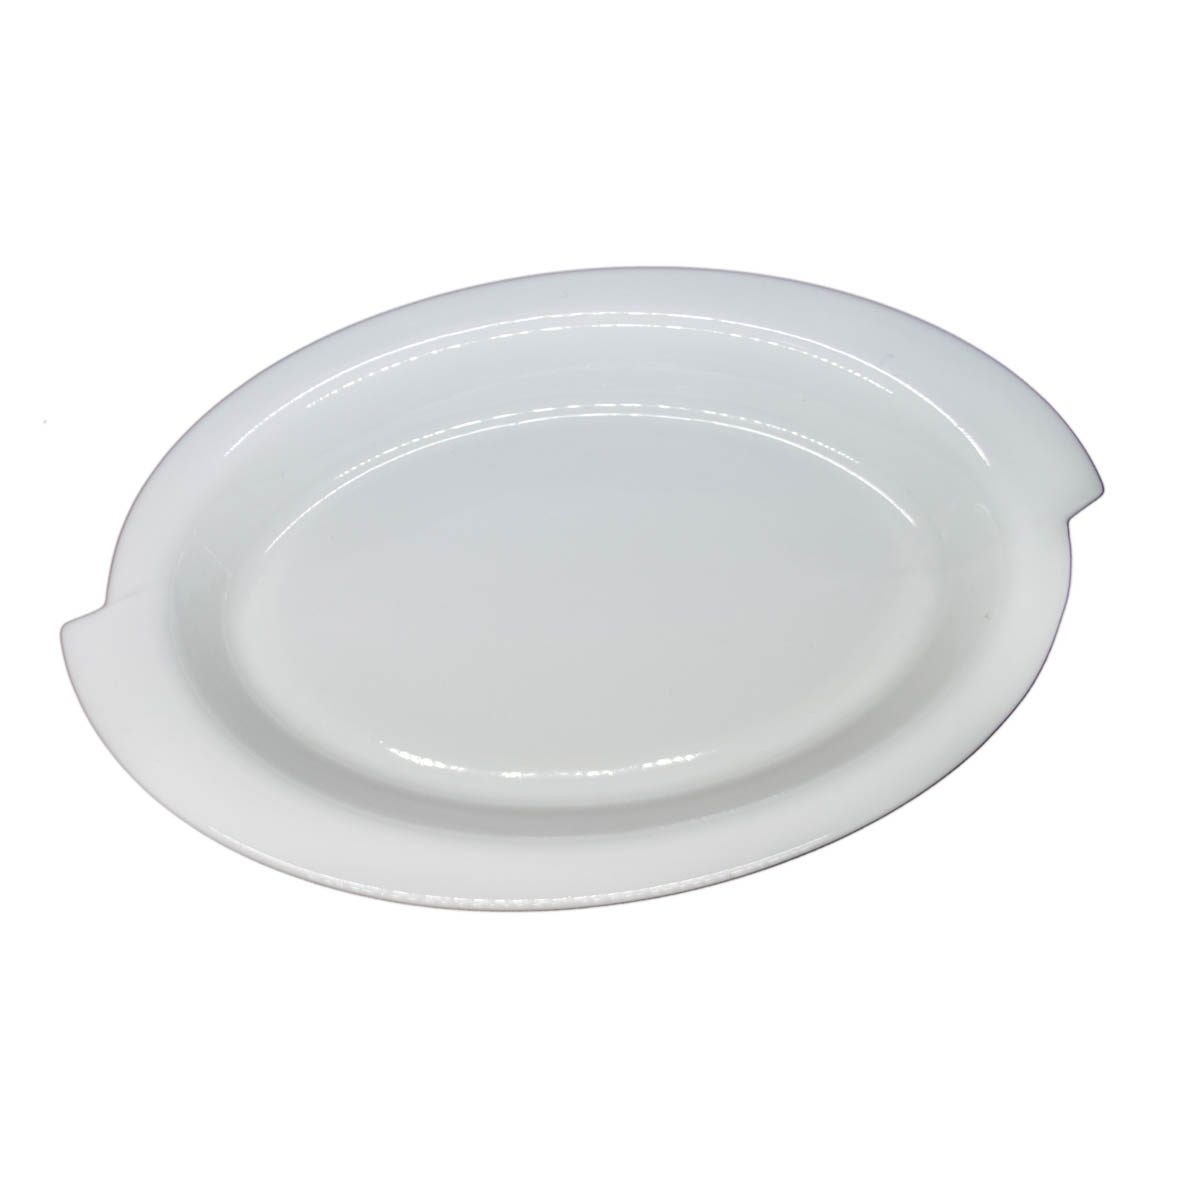 Travessa de Porcelana Oval Borda S 45x29x5